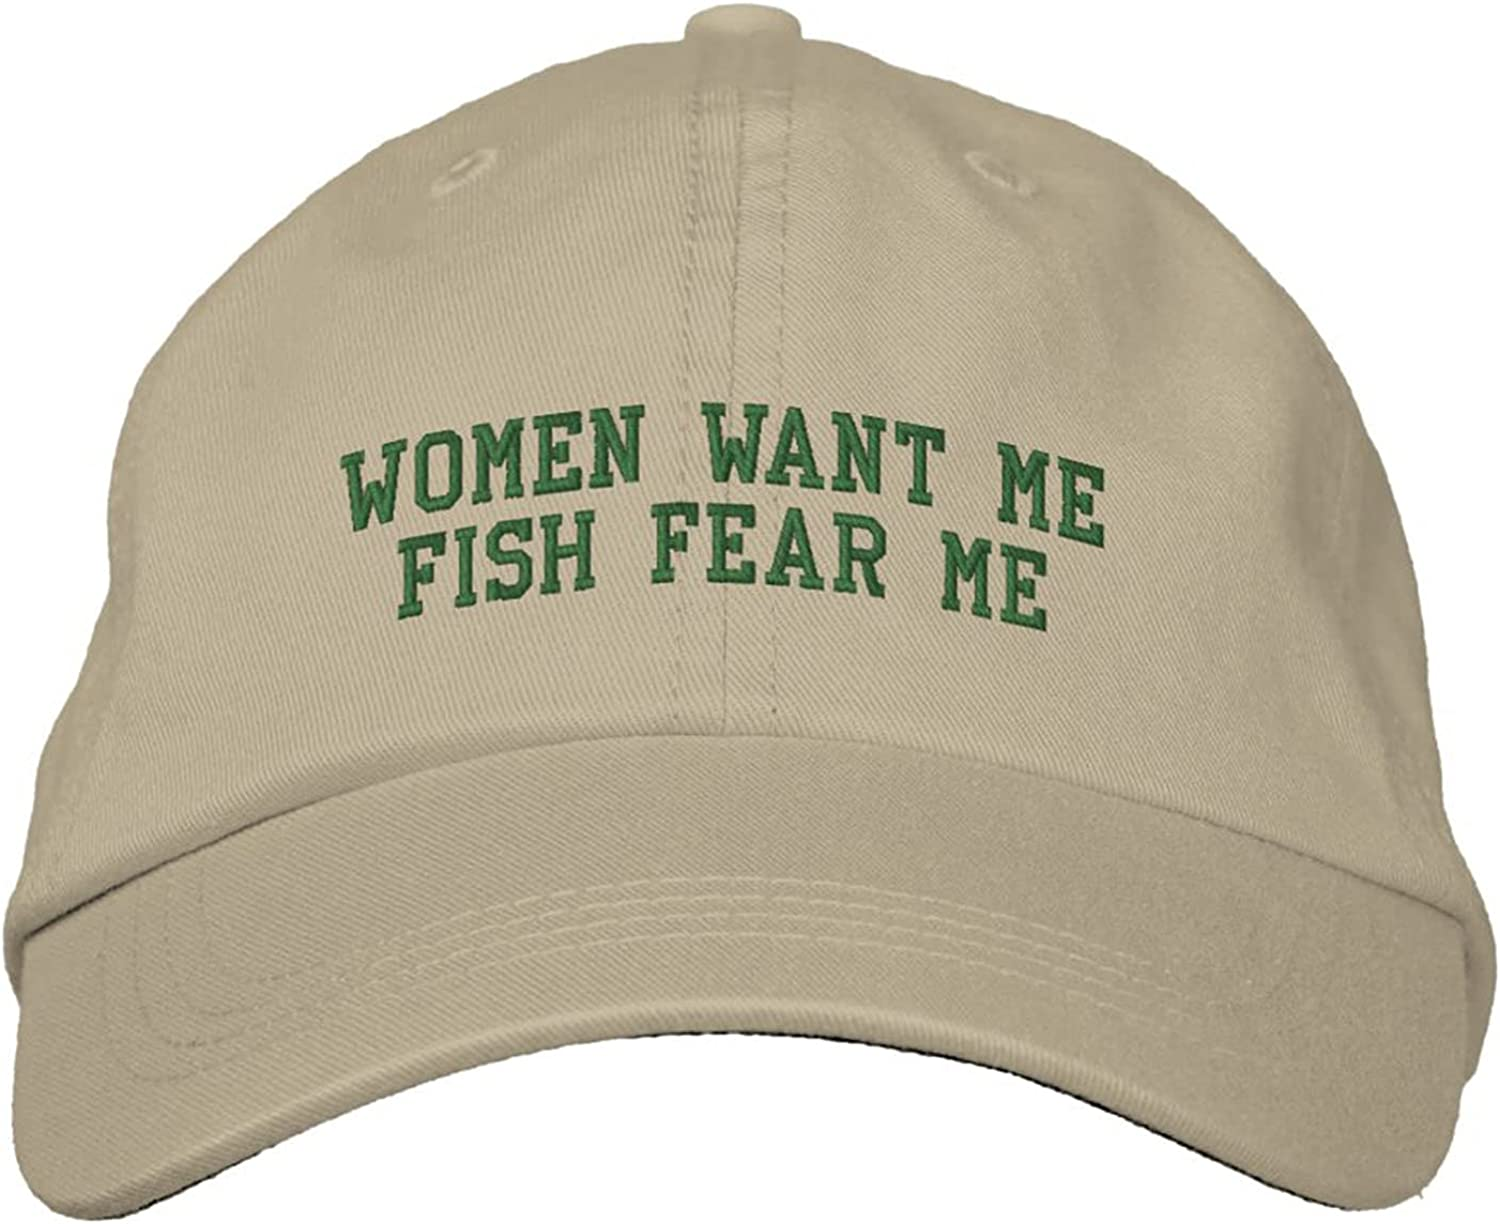 Embroidered Baseball Cap Women Want Me Baseball Hat Embroidered Cap Fish Fear Me Embroidered Adjustable Dad Hat Sun Hats